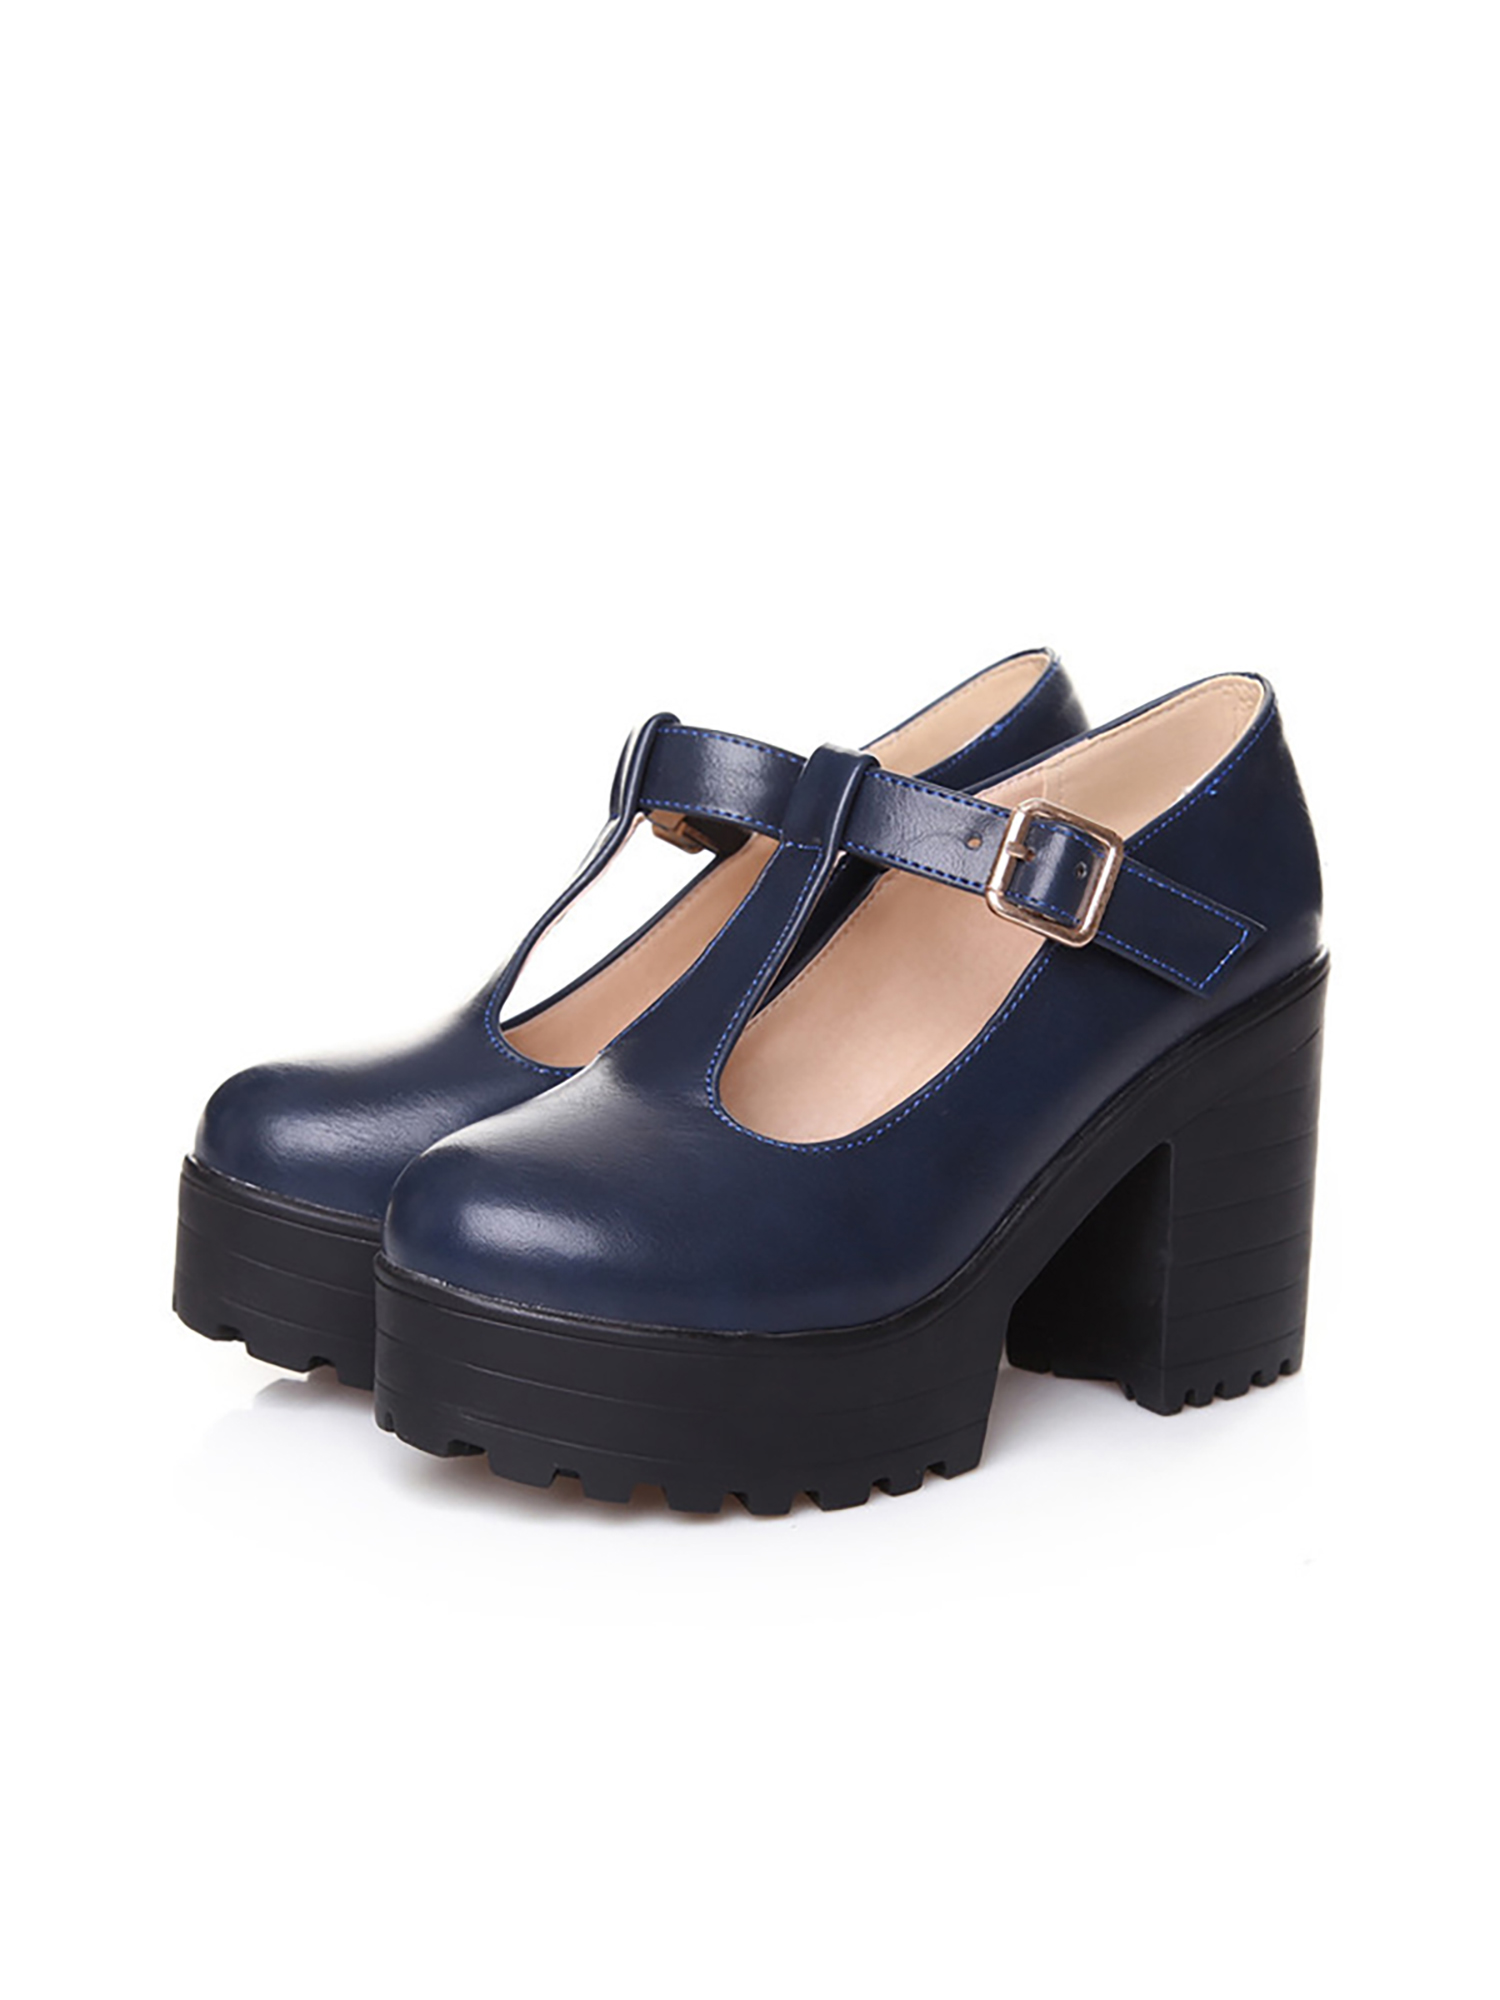 Details about  /Women Mary Jane Shoes Ankle Strap Block Mid Heels Pumps Round Toe Casual Sandals